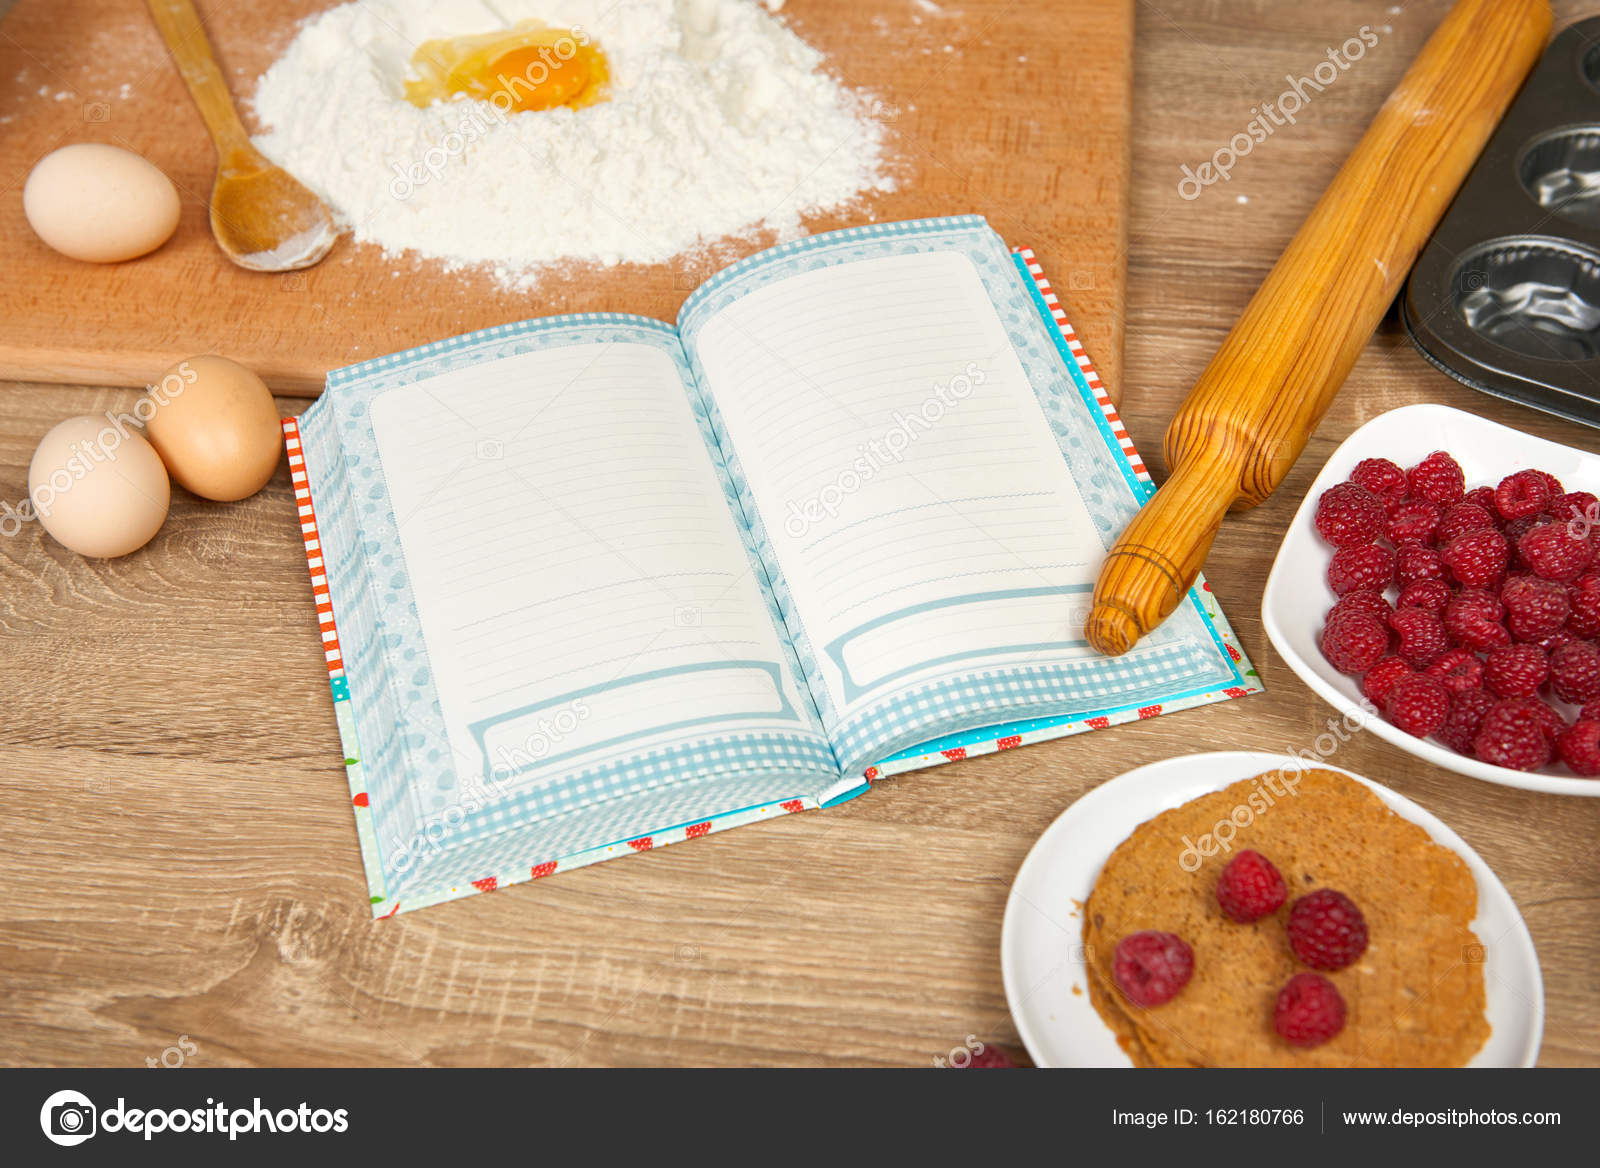 Blank cooking book and ingredients for baking cookies flour blank cooking book and ingredients for baking cookies flour broken egg cherry strawberry on wooden background raw food and kitchen utensils forumfinder Images